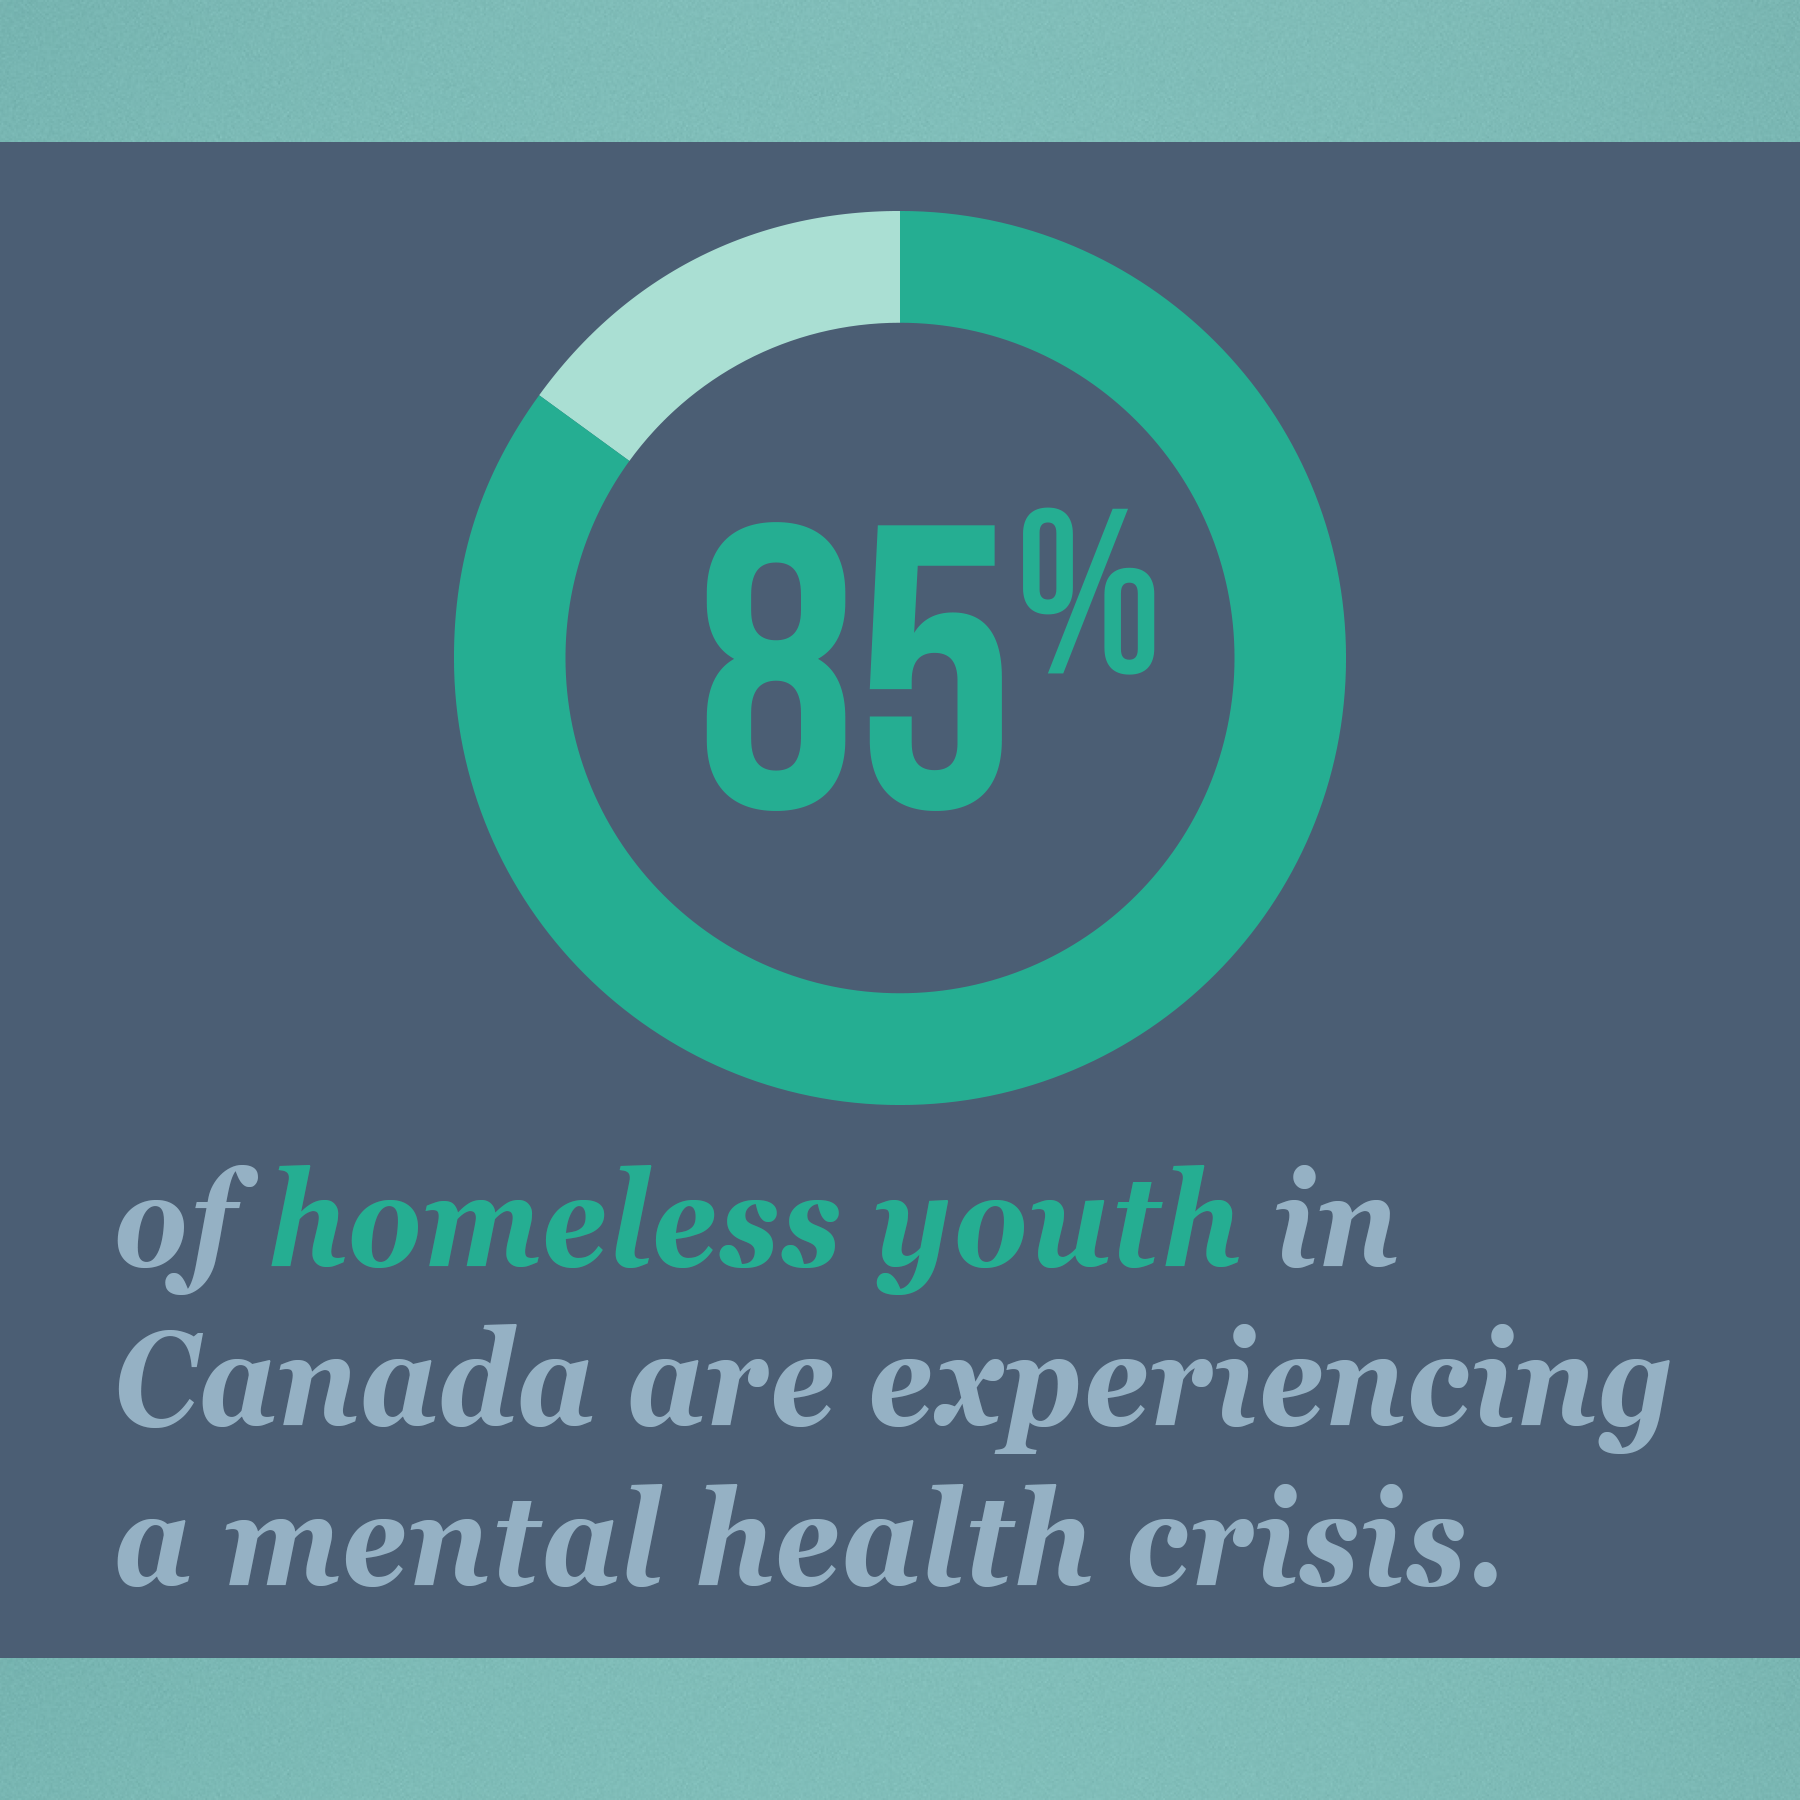 """A funding allocation from the city will help a local children's mental-health organization hire an addictions counsellor to support homeless youth.   https://calgaryherald.com/news/local-news/mental-health-fund-to-help-hire-addictions-counsellor-at-woods-homes   The City of Calgary said Thursday that more than $105,000 it provided to Wood's Homes will allow the non-profit group to further its outreach to at-risk children.  The funding is part of a $3-million commitment the city made to 19 local non-profits earlier this year to help tackle mental-health and addiction issues. Registered non-profit organizations in Calgary were eligible to apply for the funding in October 2018.  Sylvia MacIver, a spokeswoman for Wood's Homes, said statistics show there are anywhere from 300 to 400 homeless people under the age of 18 in Calgary.  """"We are quite confident there are many, many more young people who are borrowing a friend's couch or a cousin's bed for a while, and they're at risk,"""" she said.  """"So what happens is they fall into bad habits and practises on the street and the cycle begins . . . Our real purpose is to get them off the street and on the way to a better life.""""  Last year, city council earmarked $25 million to develop a citywide strategy on mental health and addiction. The community action strategy aims to address mental health, addiction and social disorder, with short, medium and long-term goals.  """"We all know that mental health is a significant and broad issue,"""" said Melanie Hulsker, acting director of Calgary Neighbourhoods.  Hulsker said the city hopes its investments will lead to safer communities, reduced crime and reduced harm to those suffering from mental health and addictions issues.  The facility, called the EXIT Youth Hub, is home to the organization's """"street services."""" It provides addictions and mental-health counselling, medical treatment and employment training for at-risk youth """"who come to us looking for a way out,"""" according to MacIver.  With 1"""